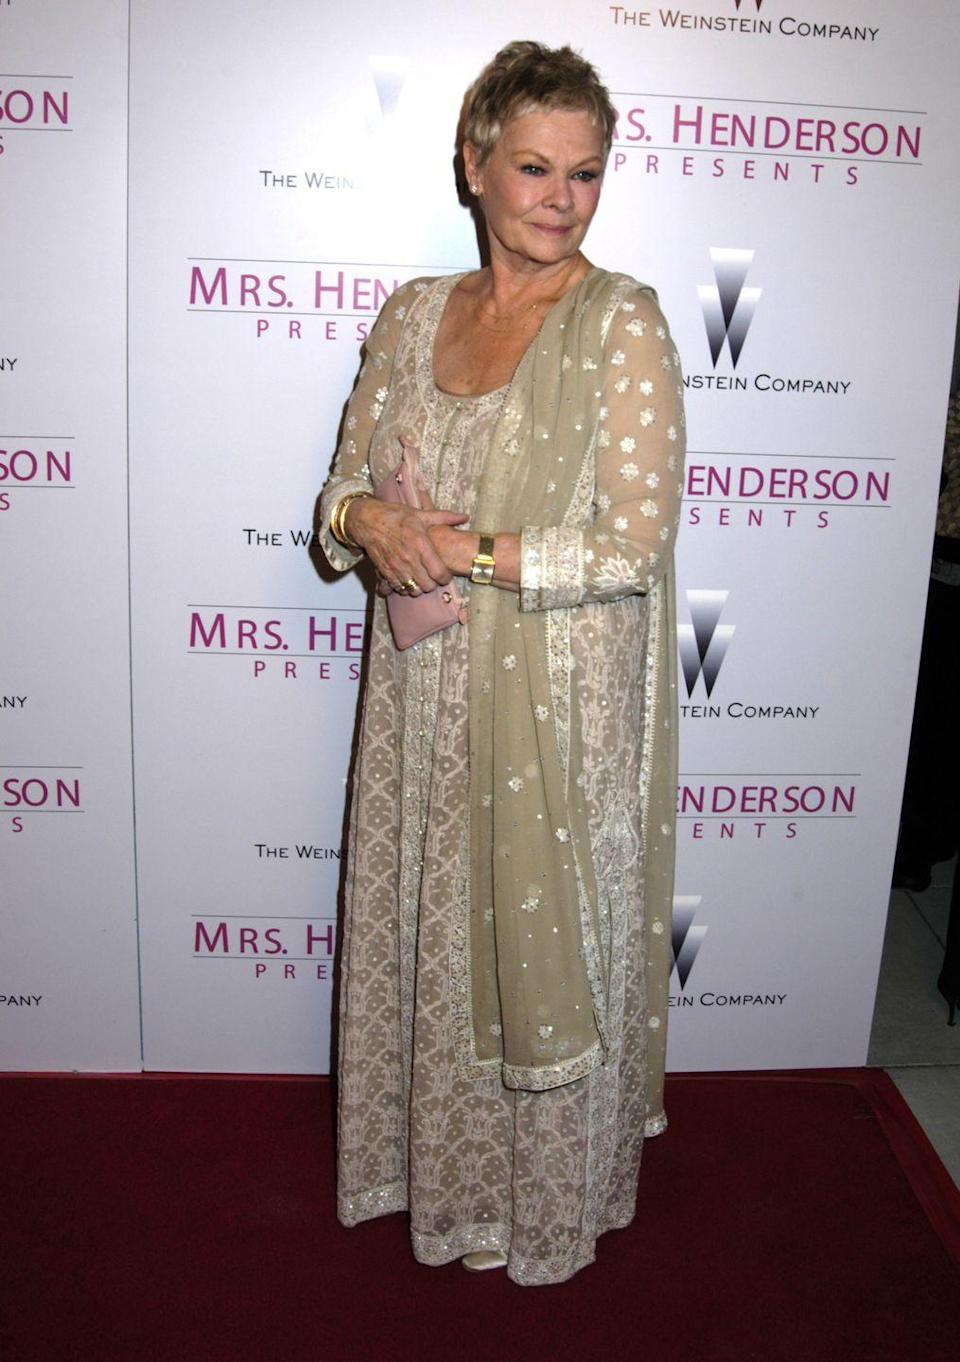 <p>In <em>Mrs. Henderson Presents, </em>Dench portrayed Laura Henderson in the British-American biographical musical film. She received an Oscar nomination for the role.</p>